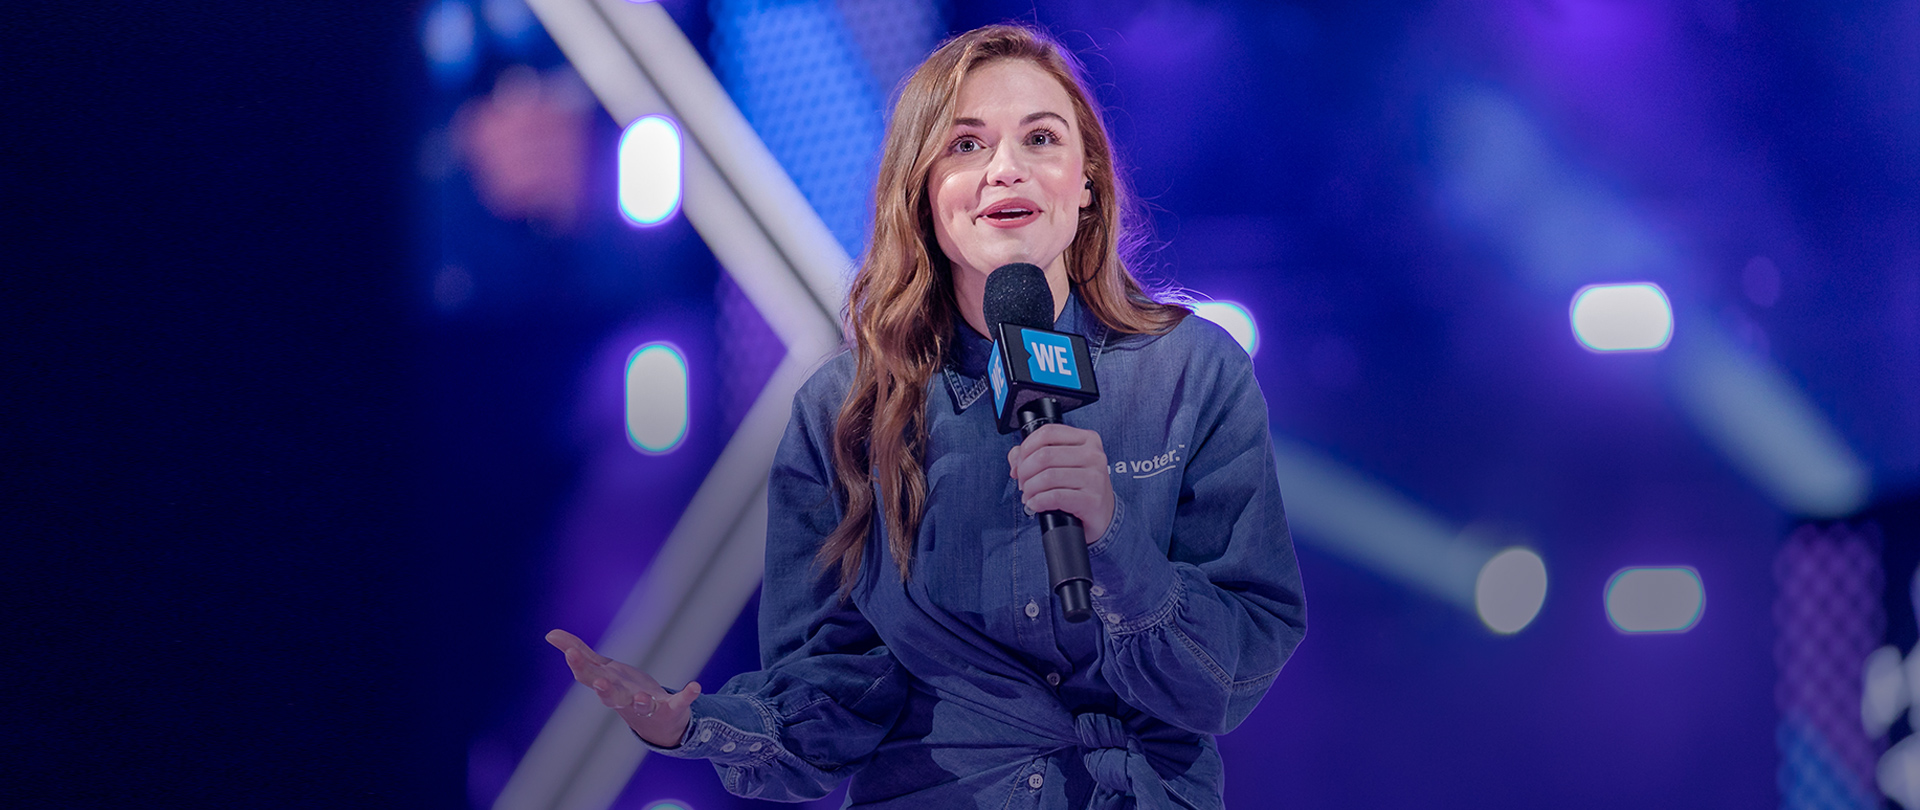 weday-holland-roden-banner-1.jpg